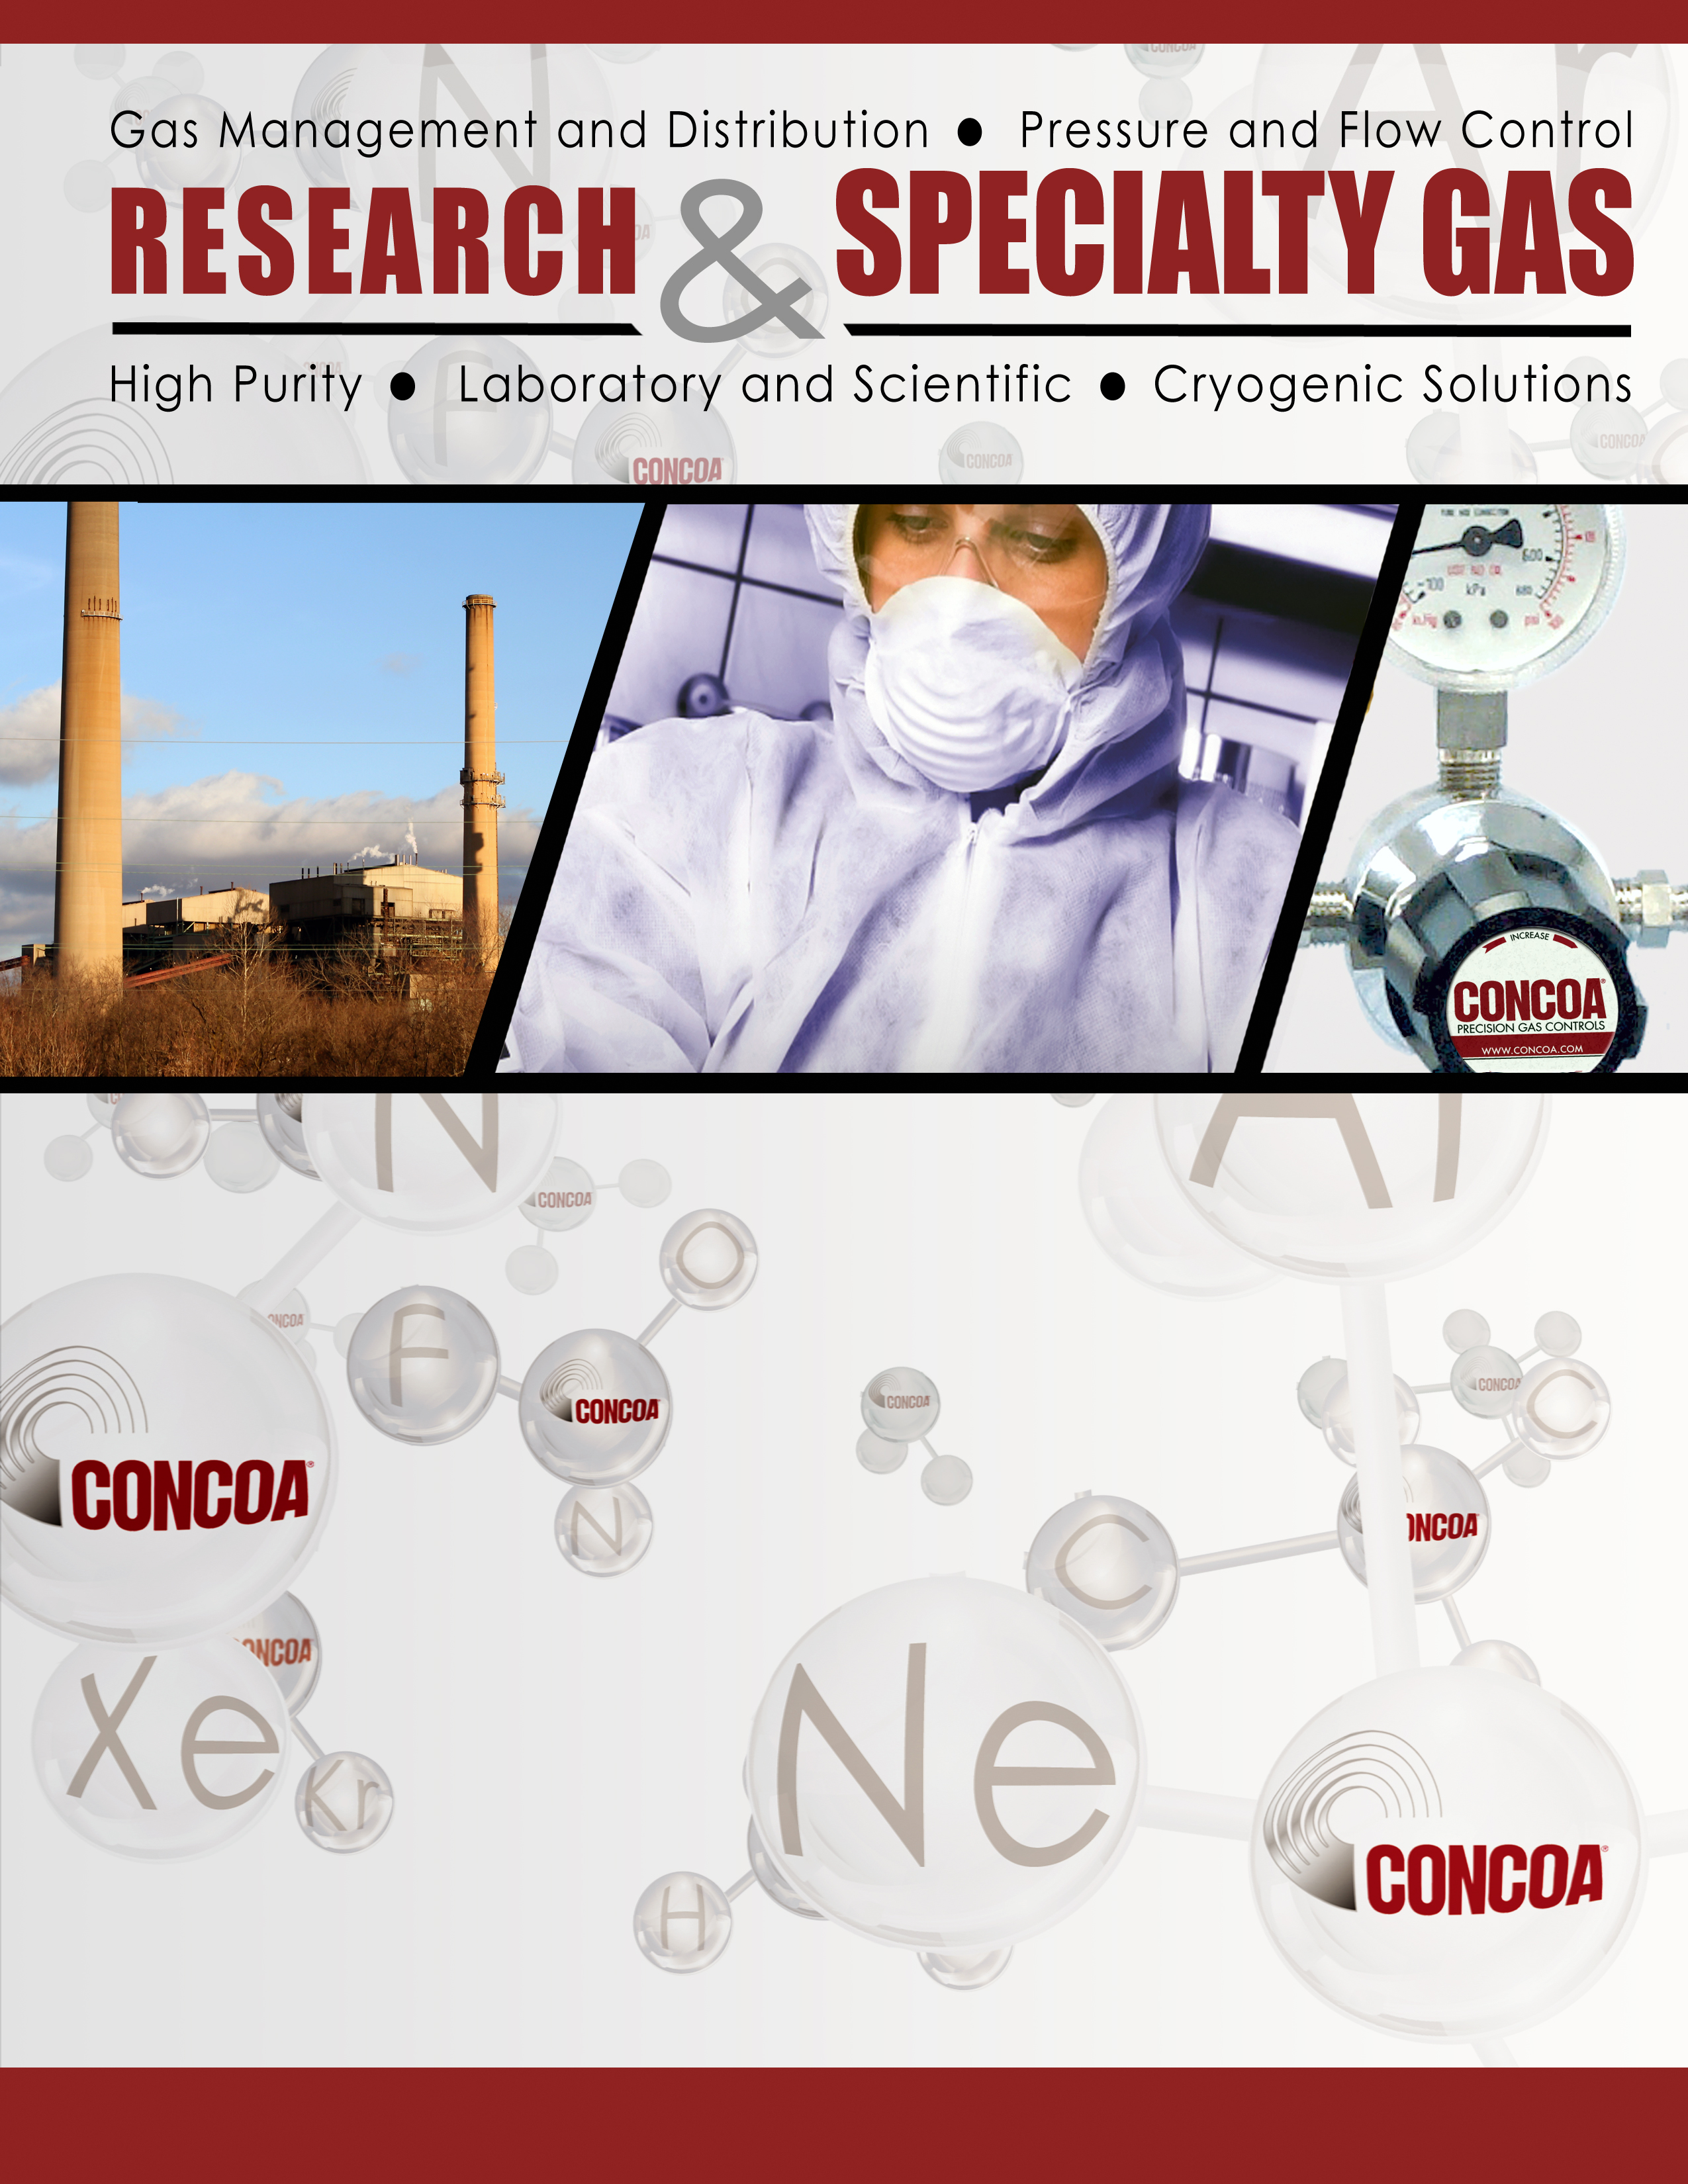 CONCOA :: Precision Gas Controls